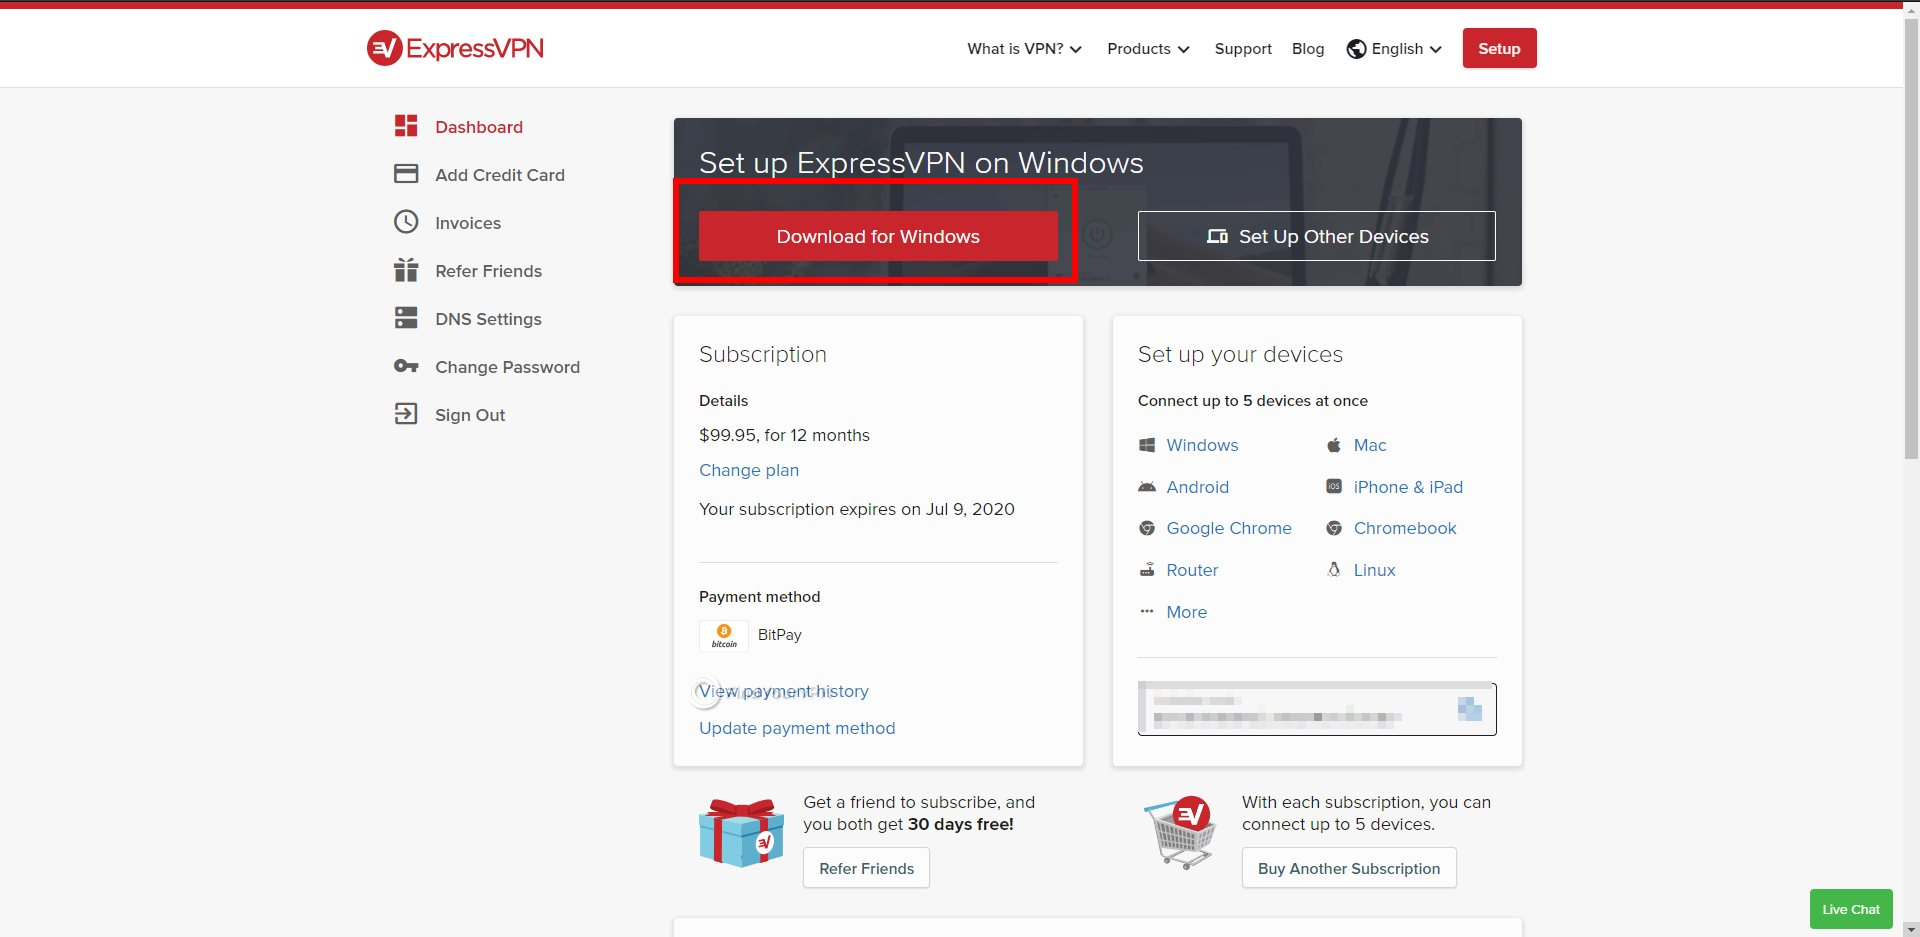 ExpressVPN Download Button